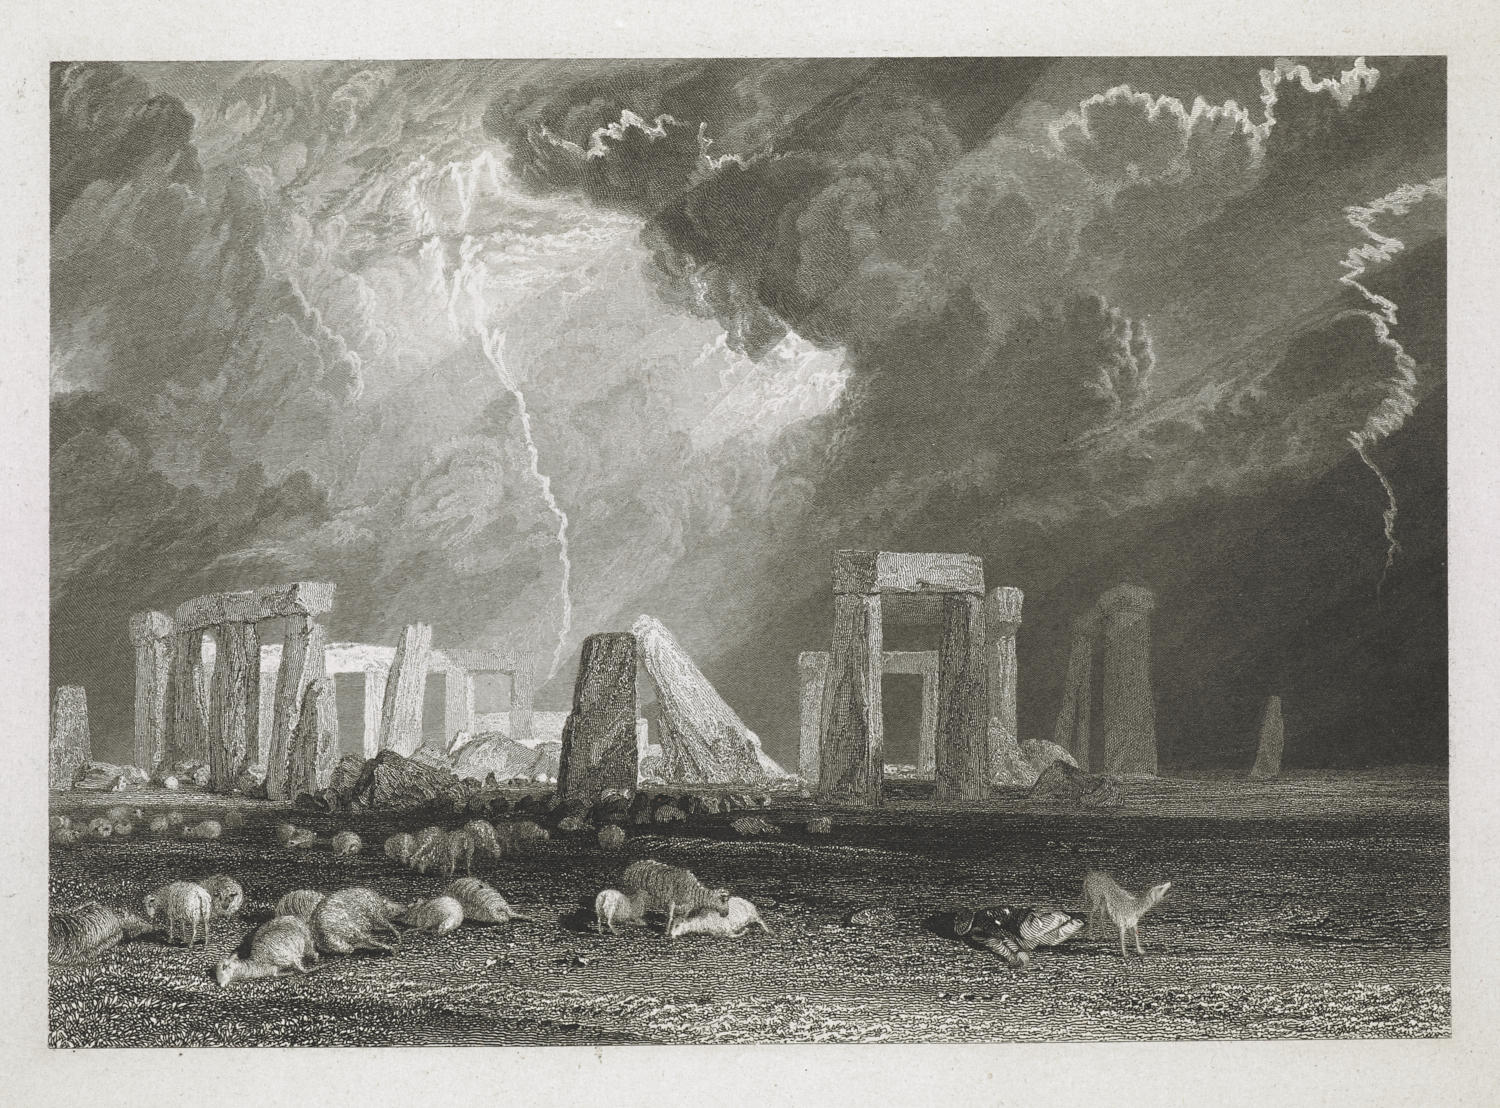 Robert William Wallis (1794-1878) after Joseph Mallord William Turner (1775-1851), Stone Henge, published London, Charles Heath (1785-1848)